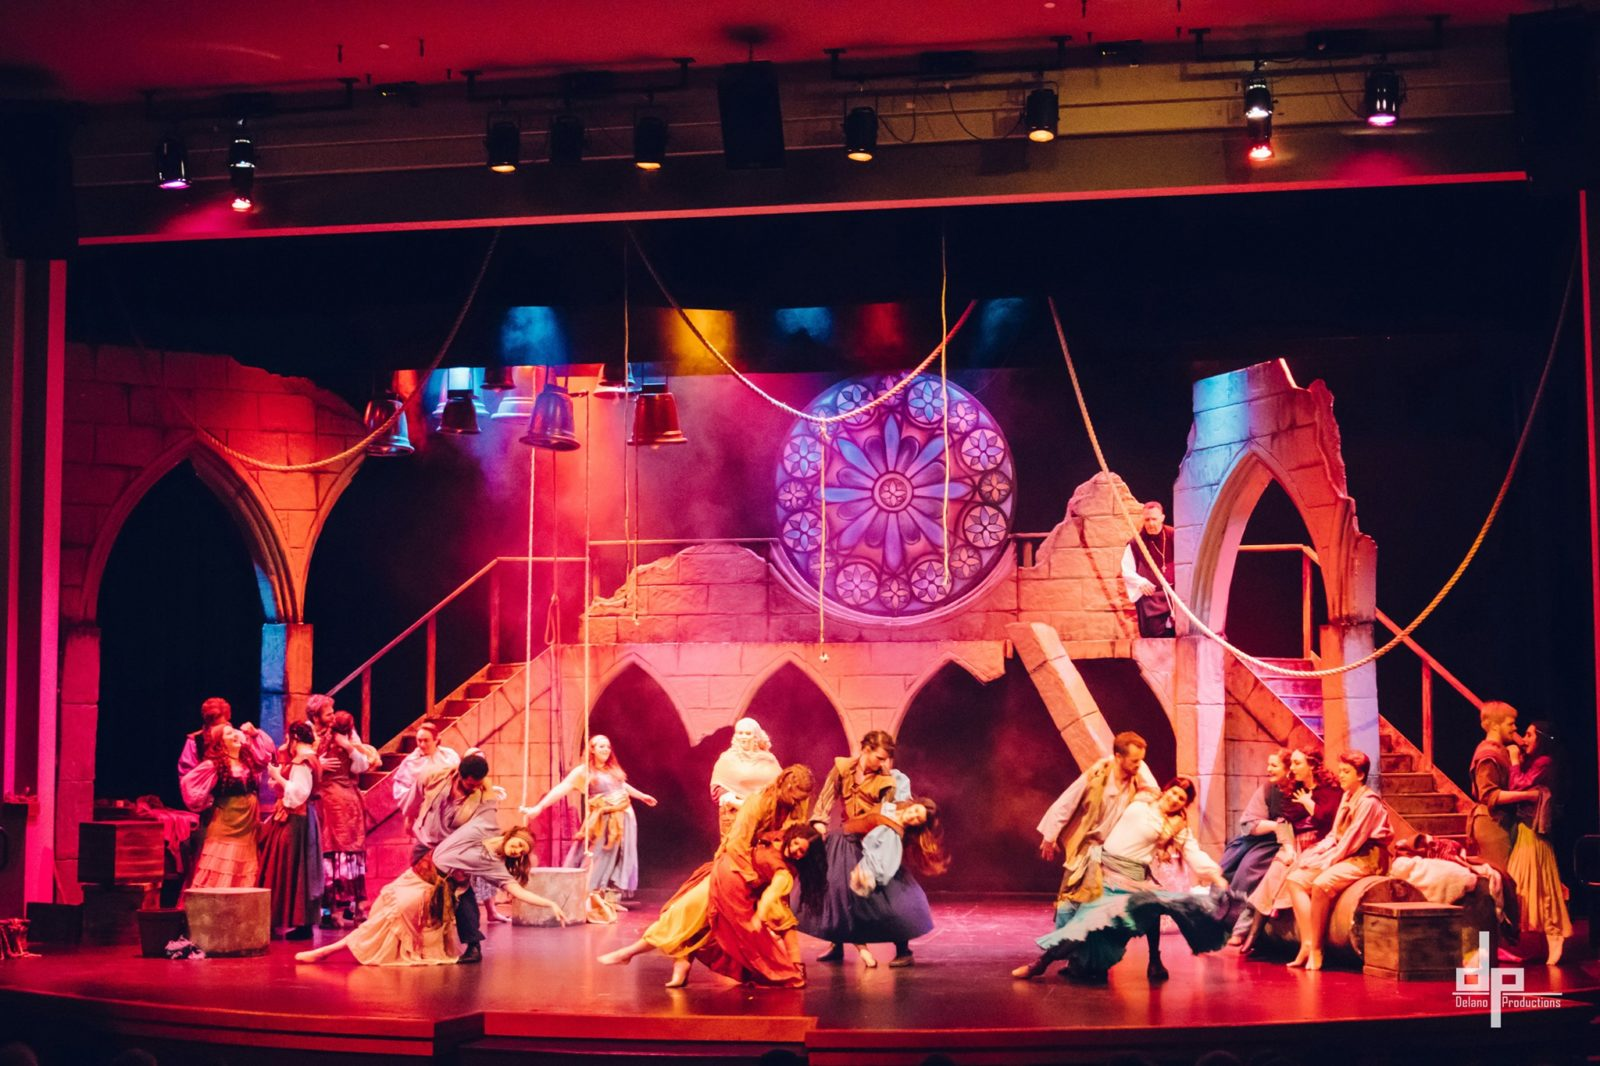 The Kroc Center's 2019 production of the Hunchback of Notre Dame